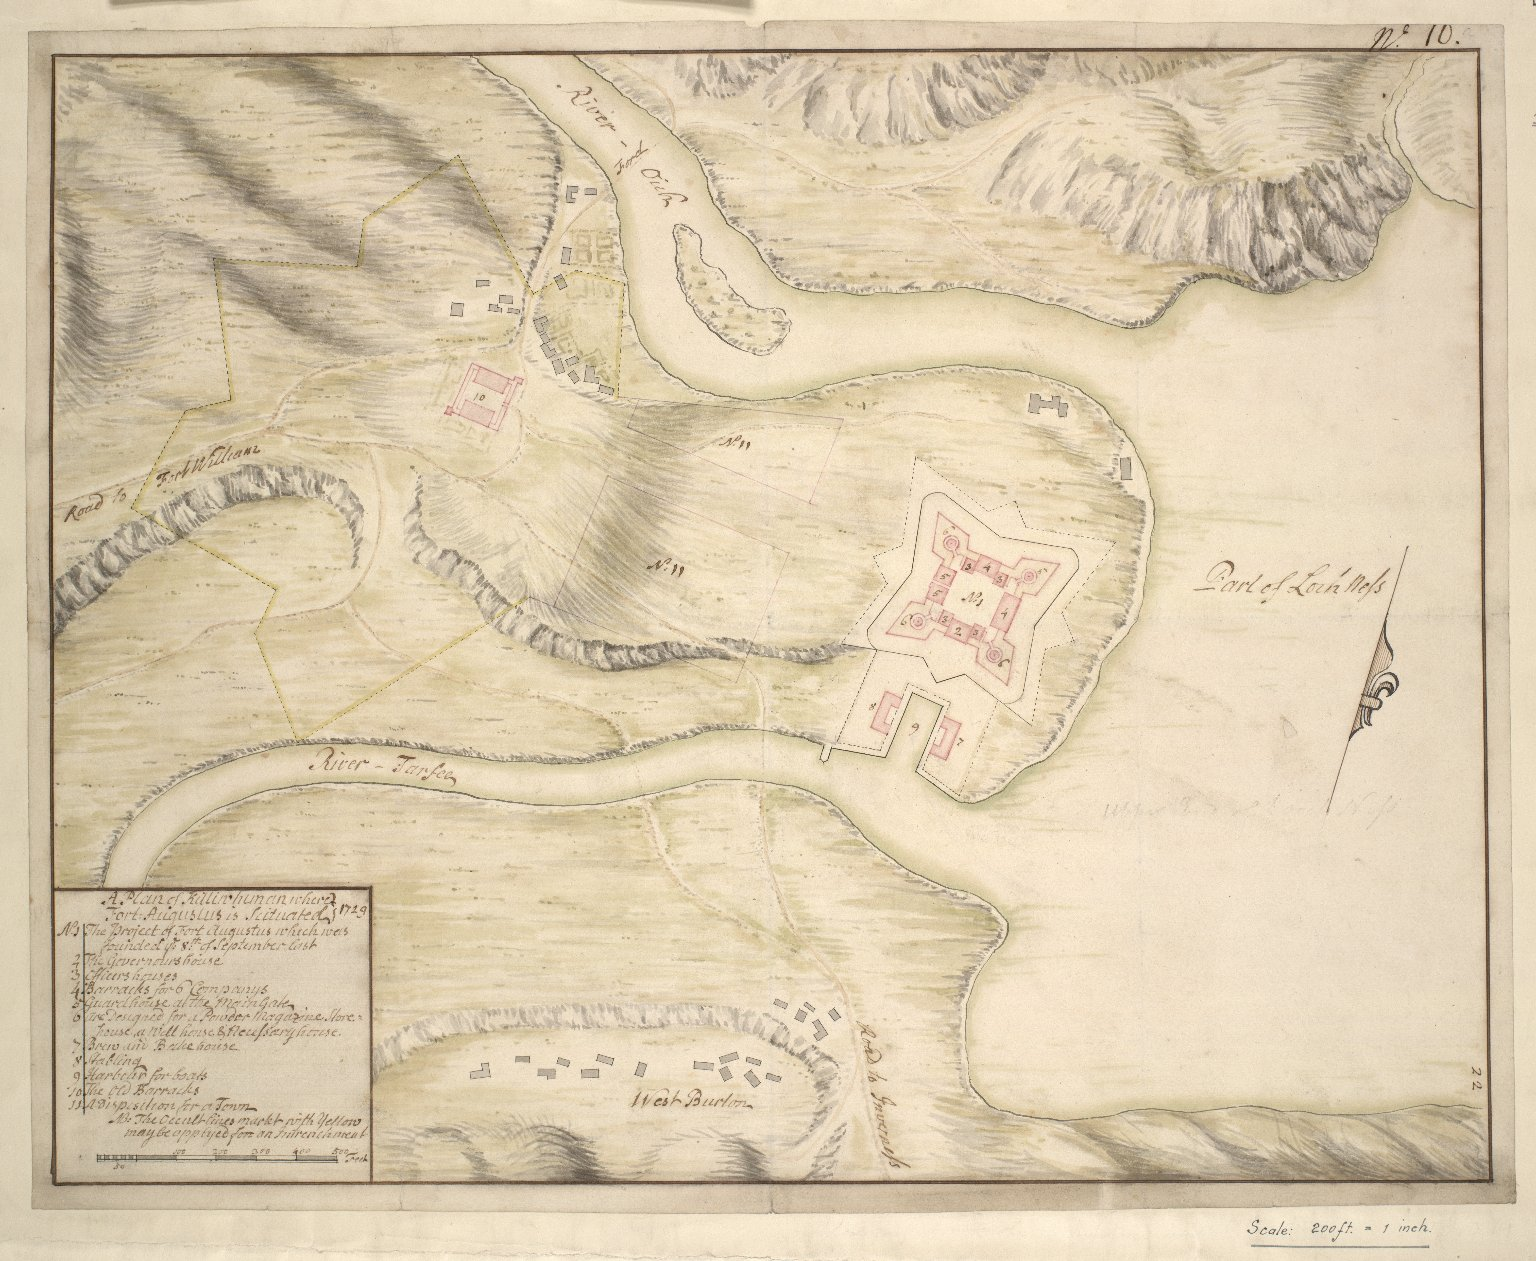 A Plan of Killiwhunan where Fort Augustus is Situated. [1 of 1]